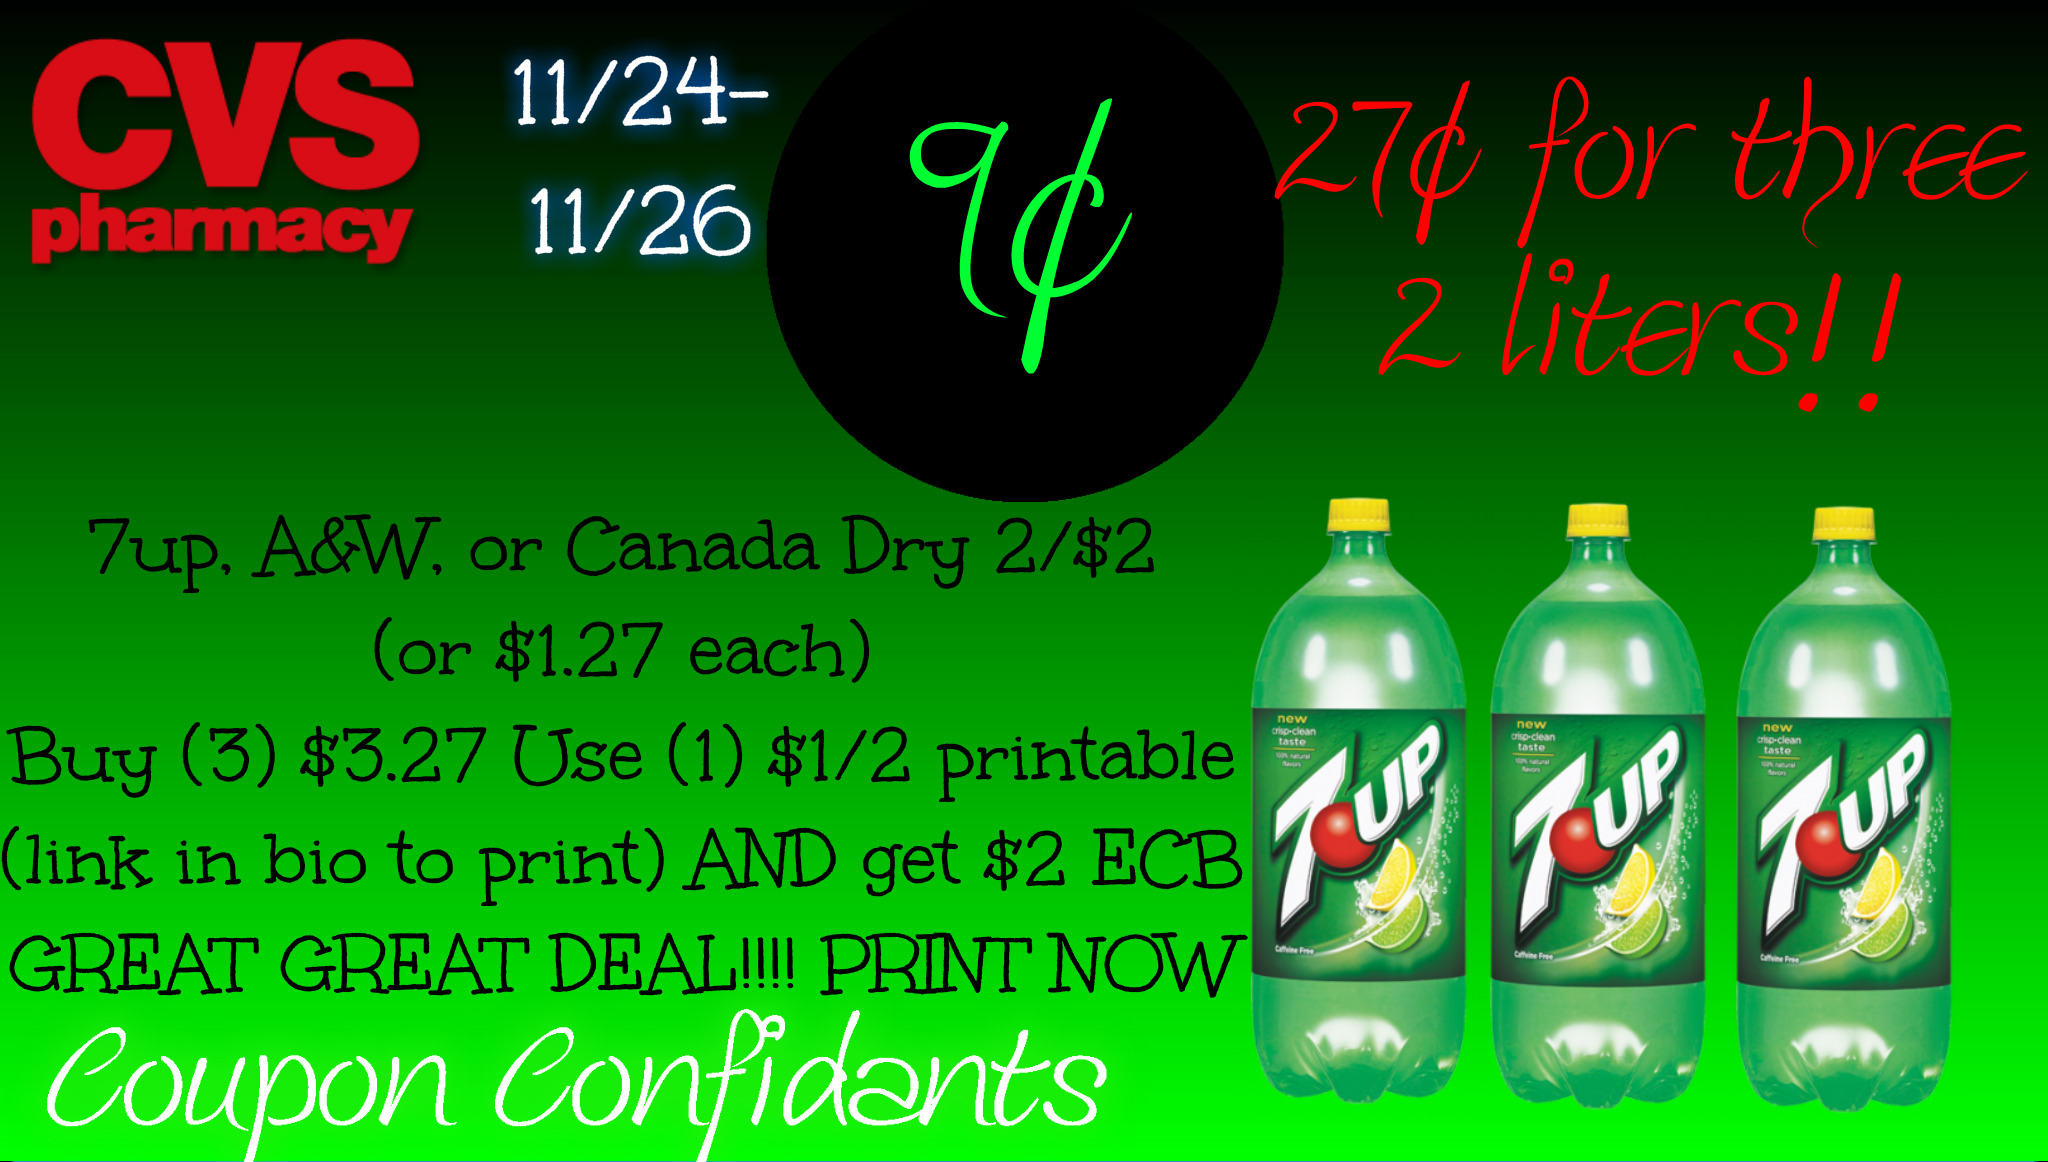 9¢ for 7up 2 liter! WOW!!! GREAT CVS DEAL!